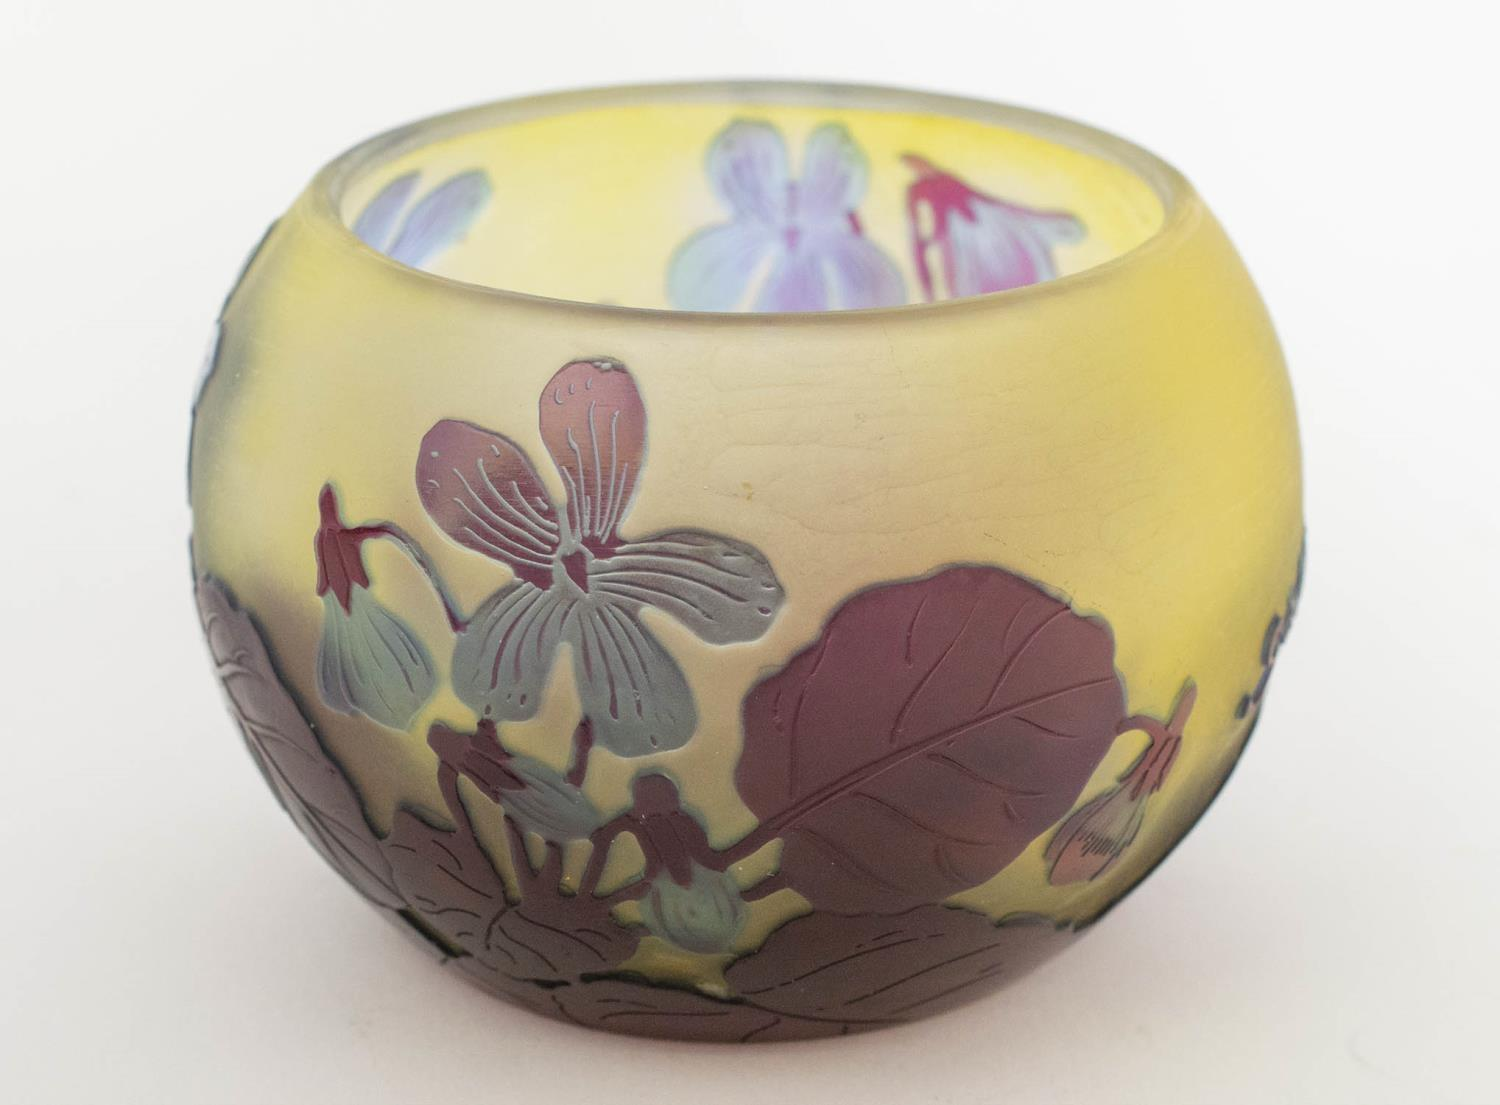 BOWL, Emile Galle Cameo glass, having subtle light blue and amethyst tones with foliate pattern, 8cm - Image 2 of 6